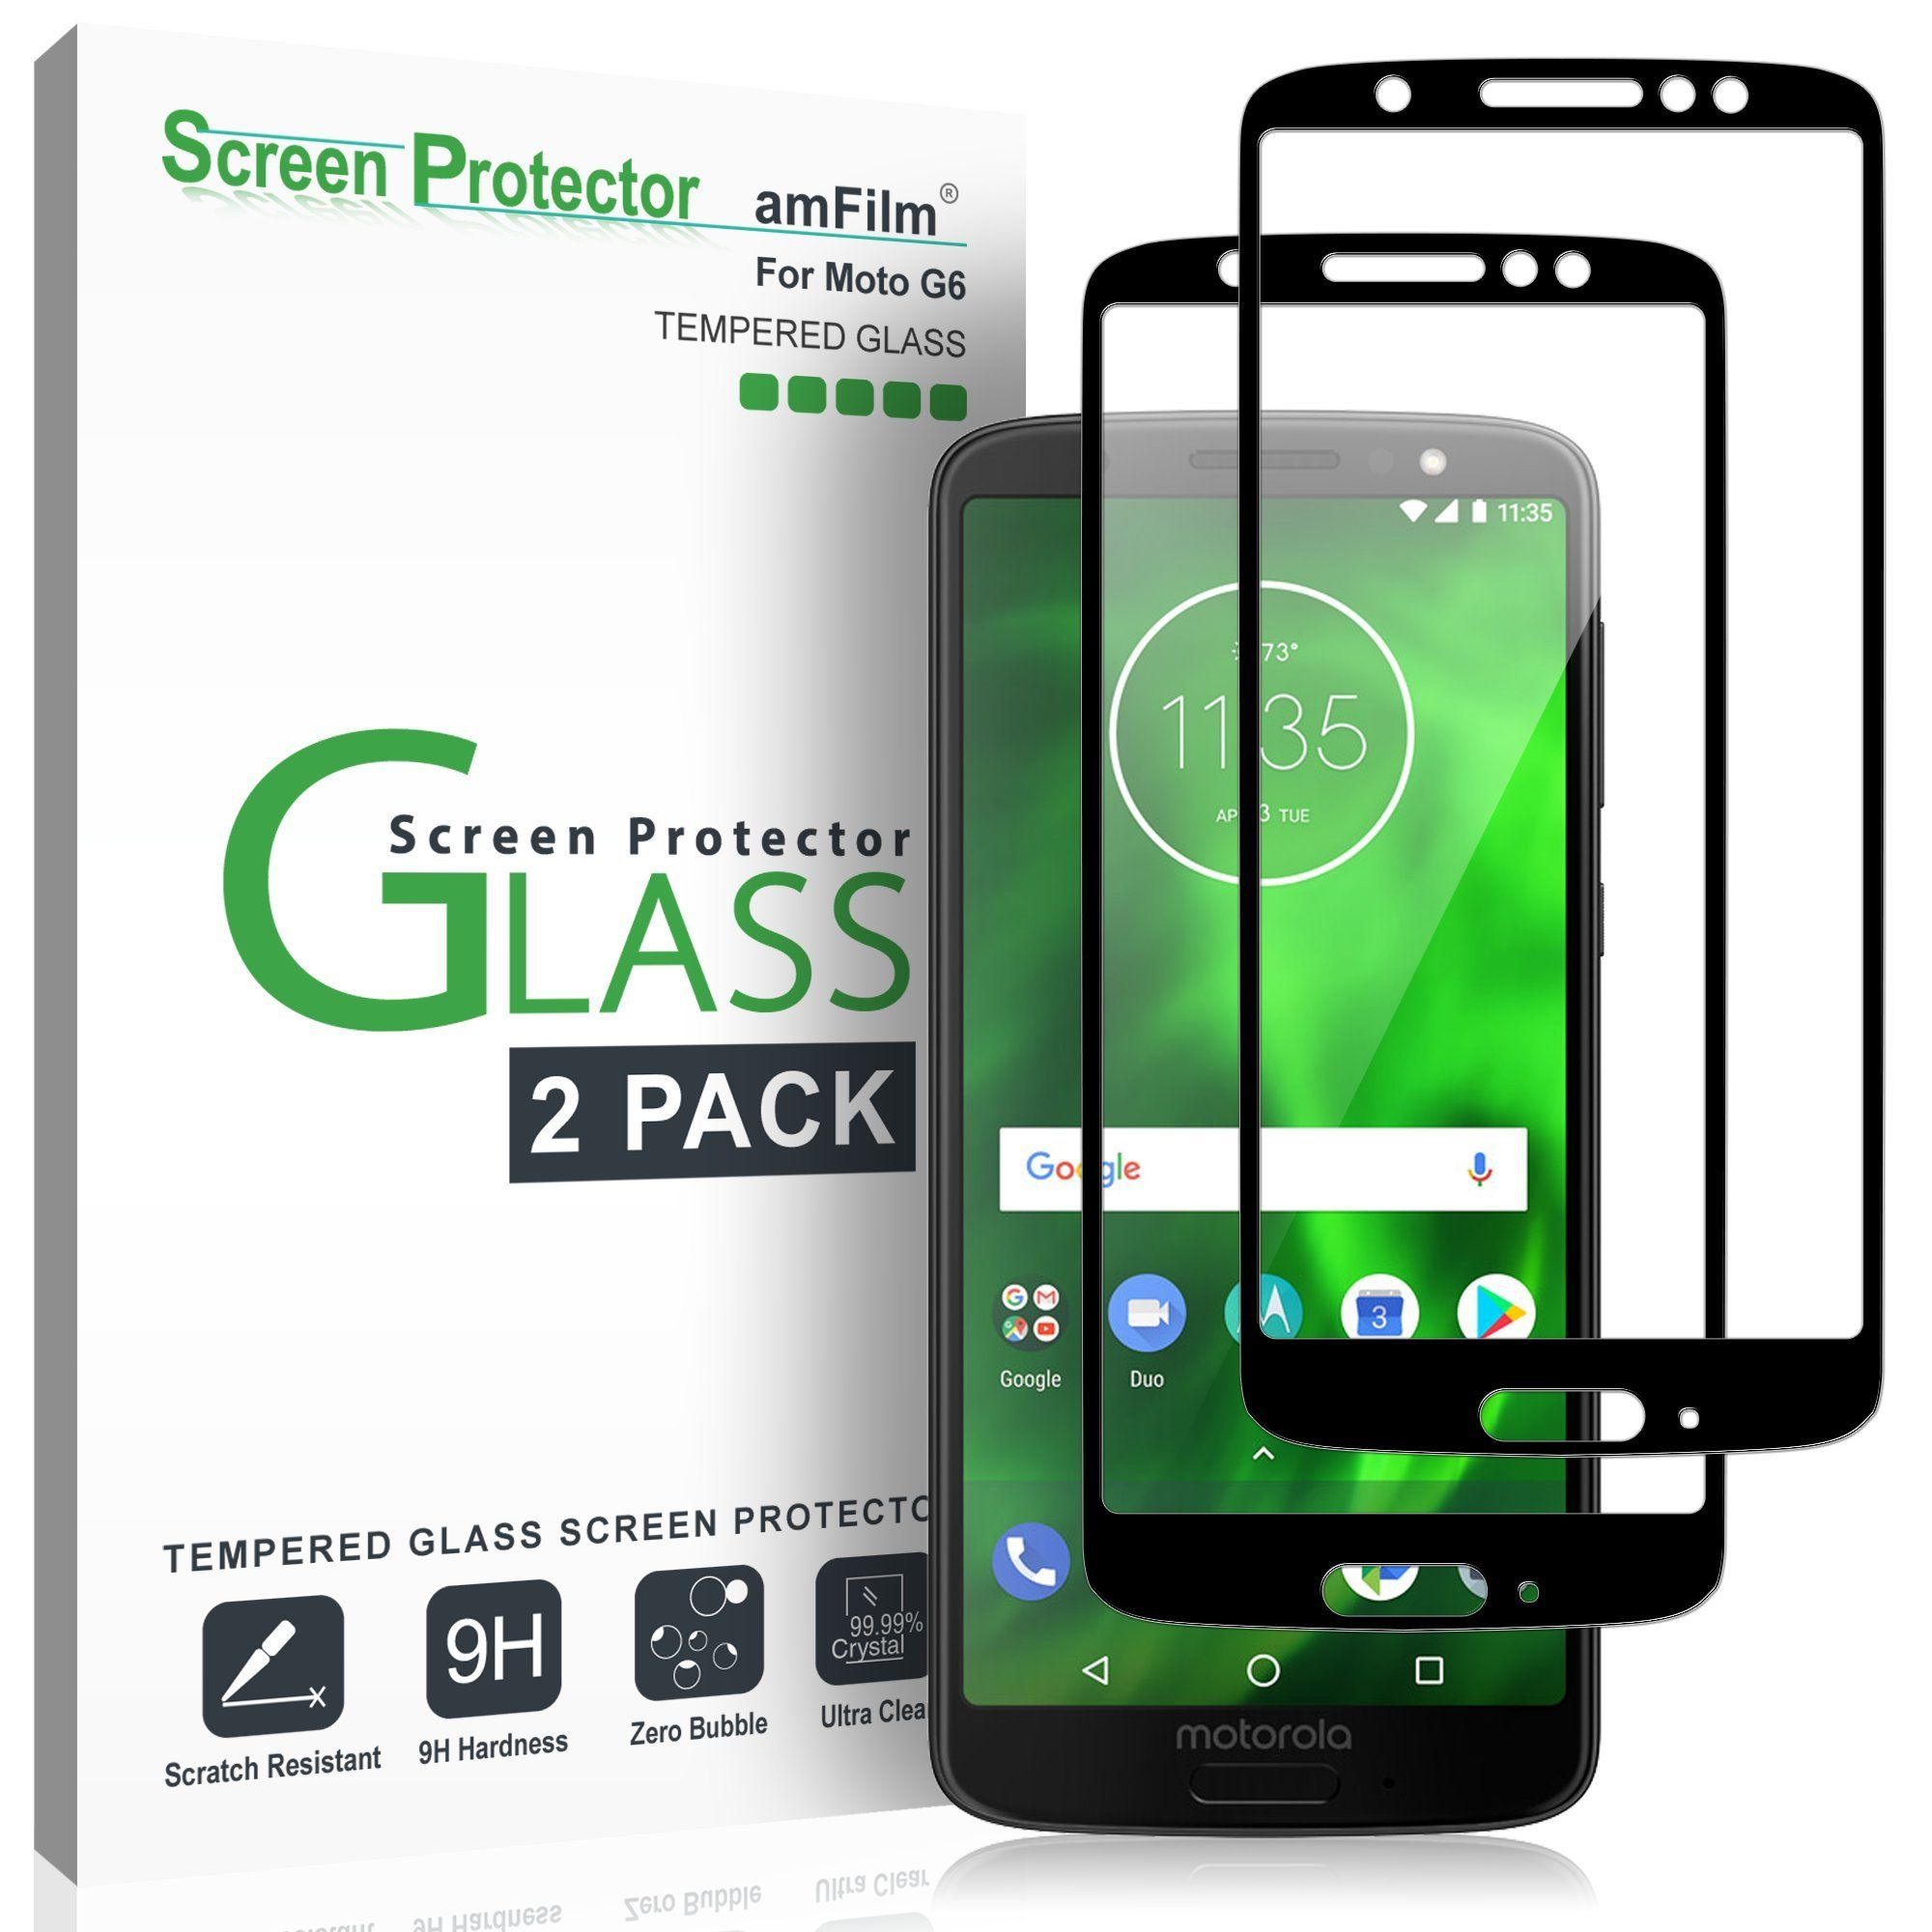 Moto G6 Screen Protector Glass Full Screen Coverage 2 Pack